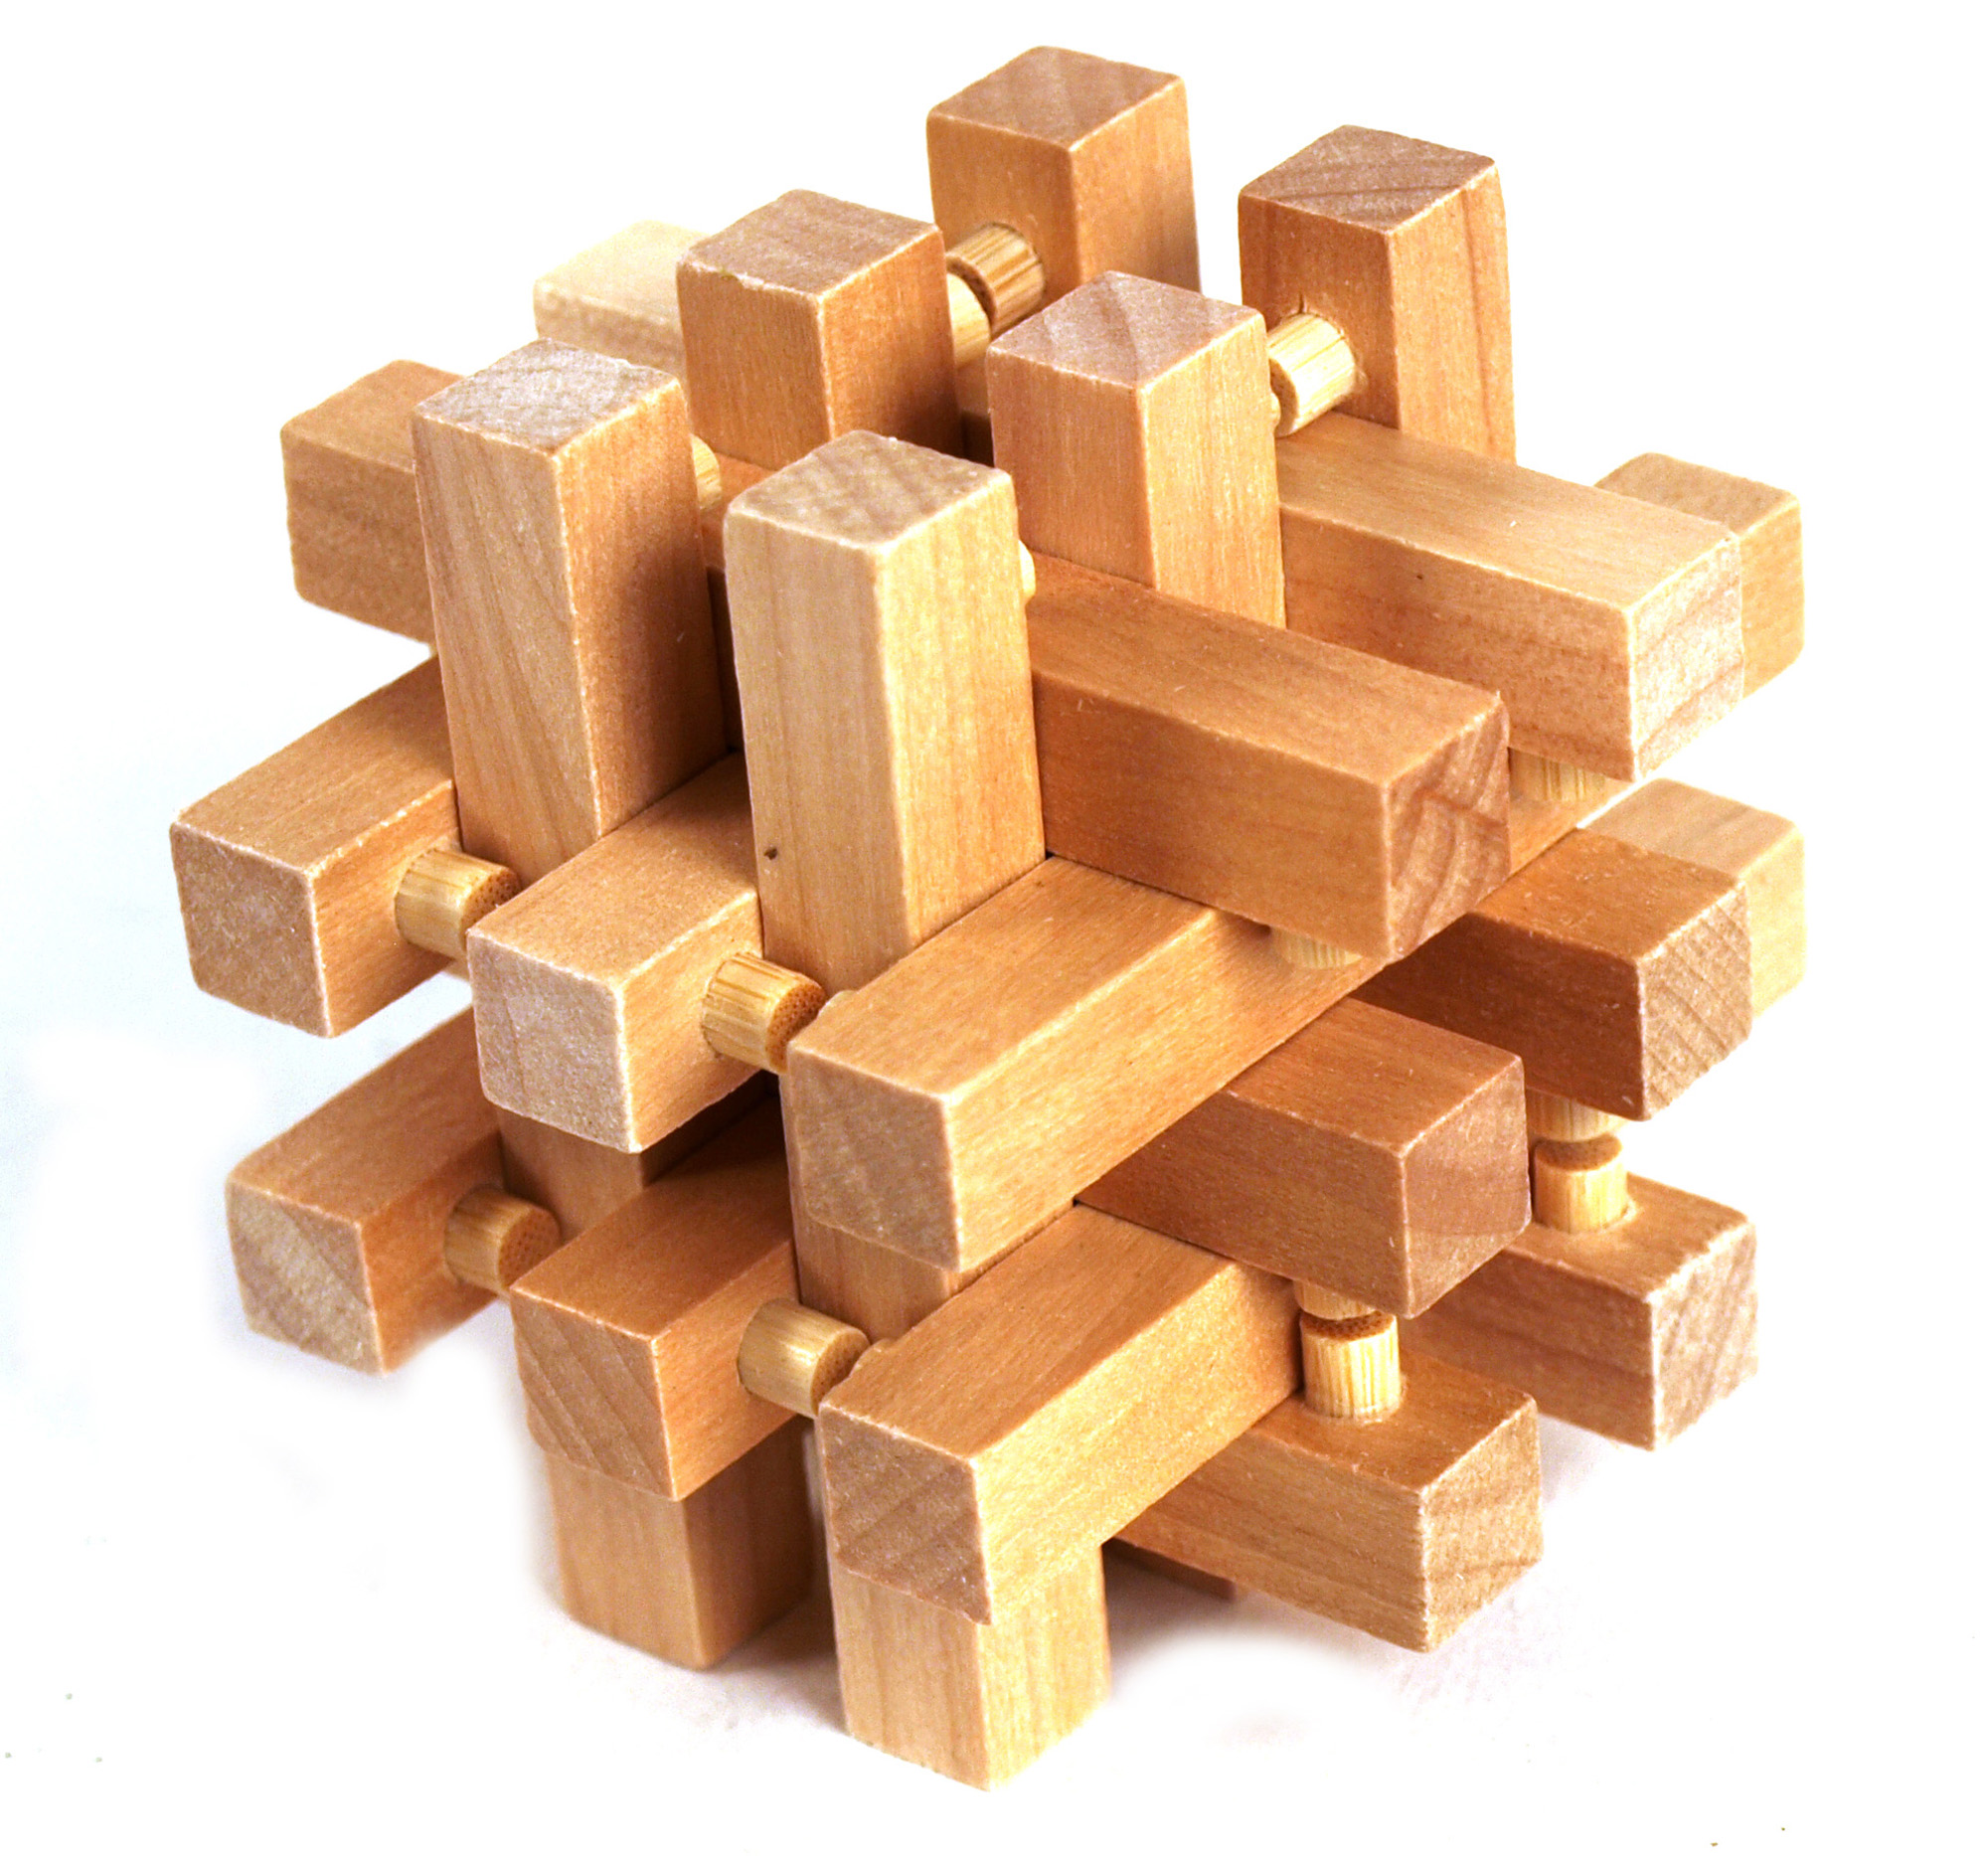 3D Wood Puzzle - Matrix Cube